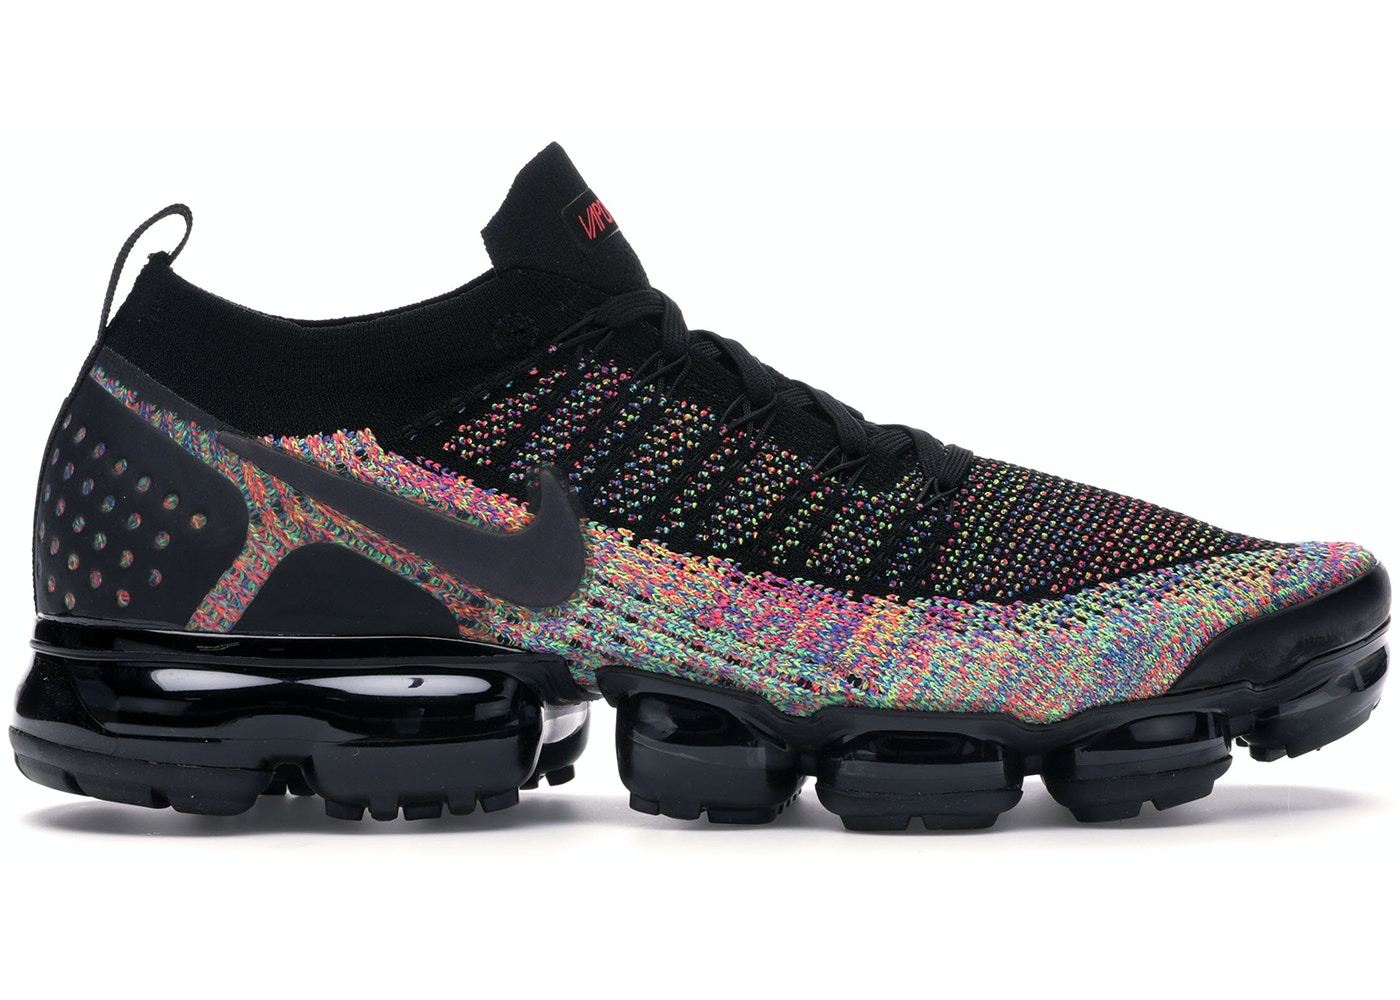 cheaper 4b620 1af9e Air VaporMax 2 Black Multi-Color